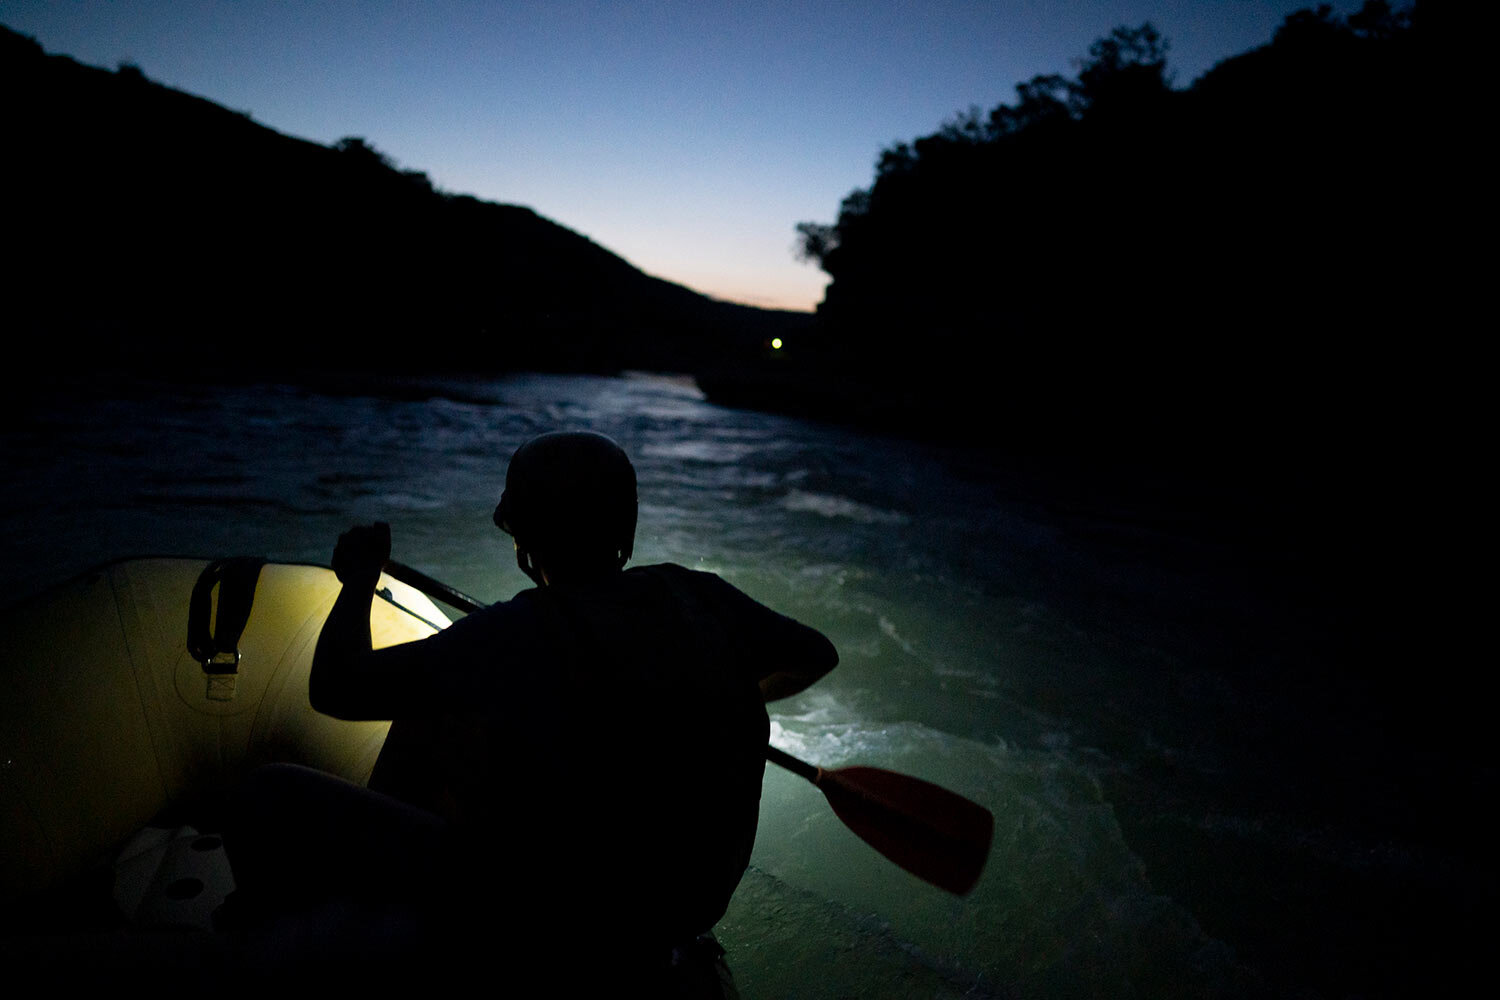 A river rafting guide paddles at dusk on the Vjosa River, Albania. (AP Photo/Felipe Dana)